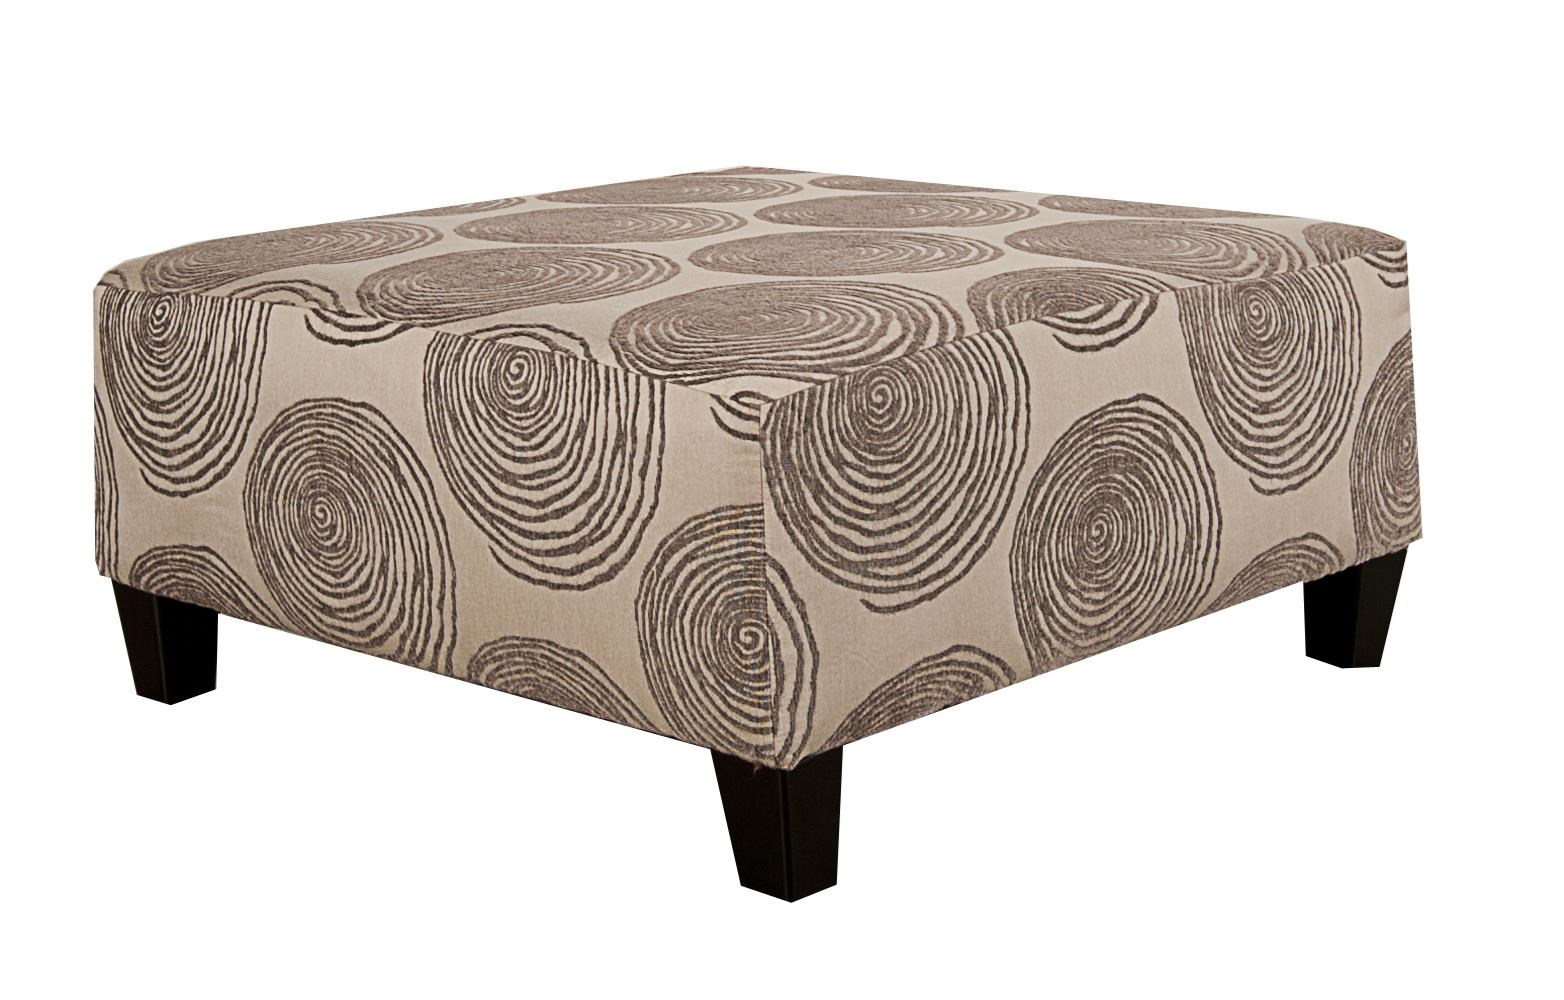 Morris Home Furnishings Agustus Agustus Ottoman - Item Number: 324113317